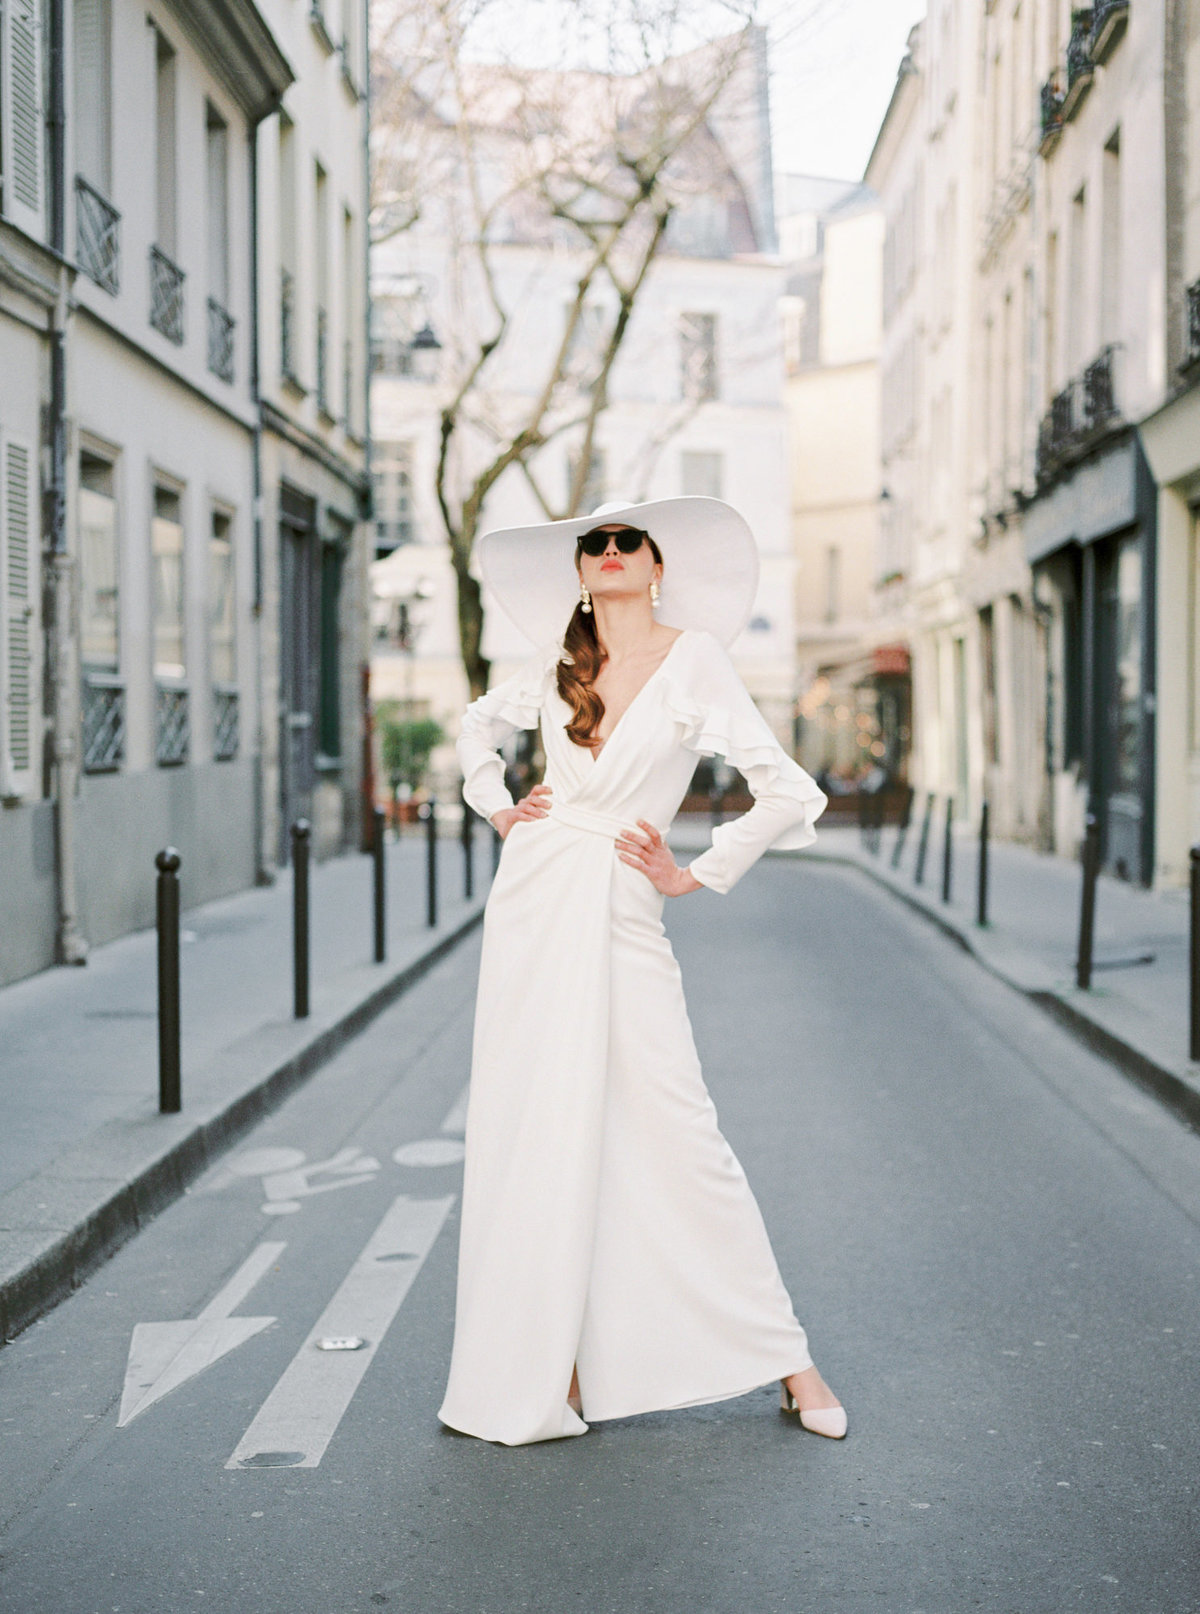 Paris_wedding_photographer_claire_Morris_121